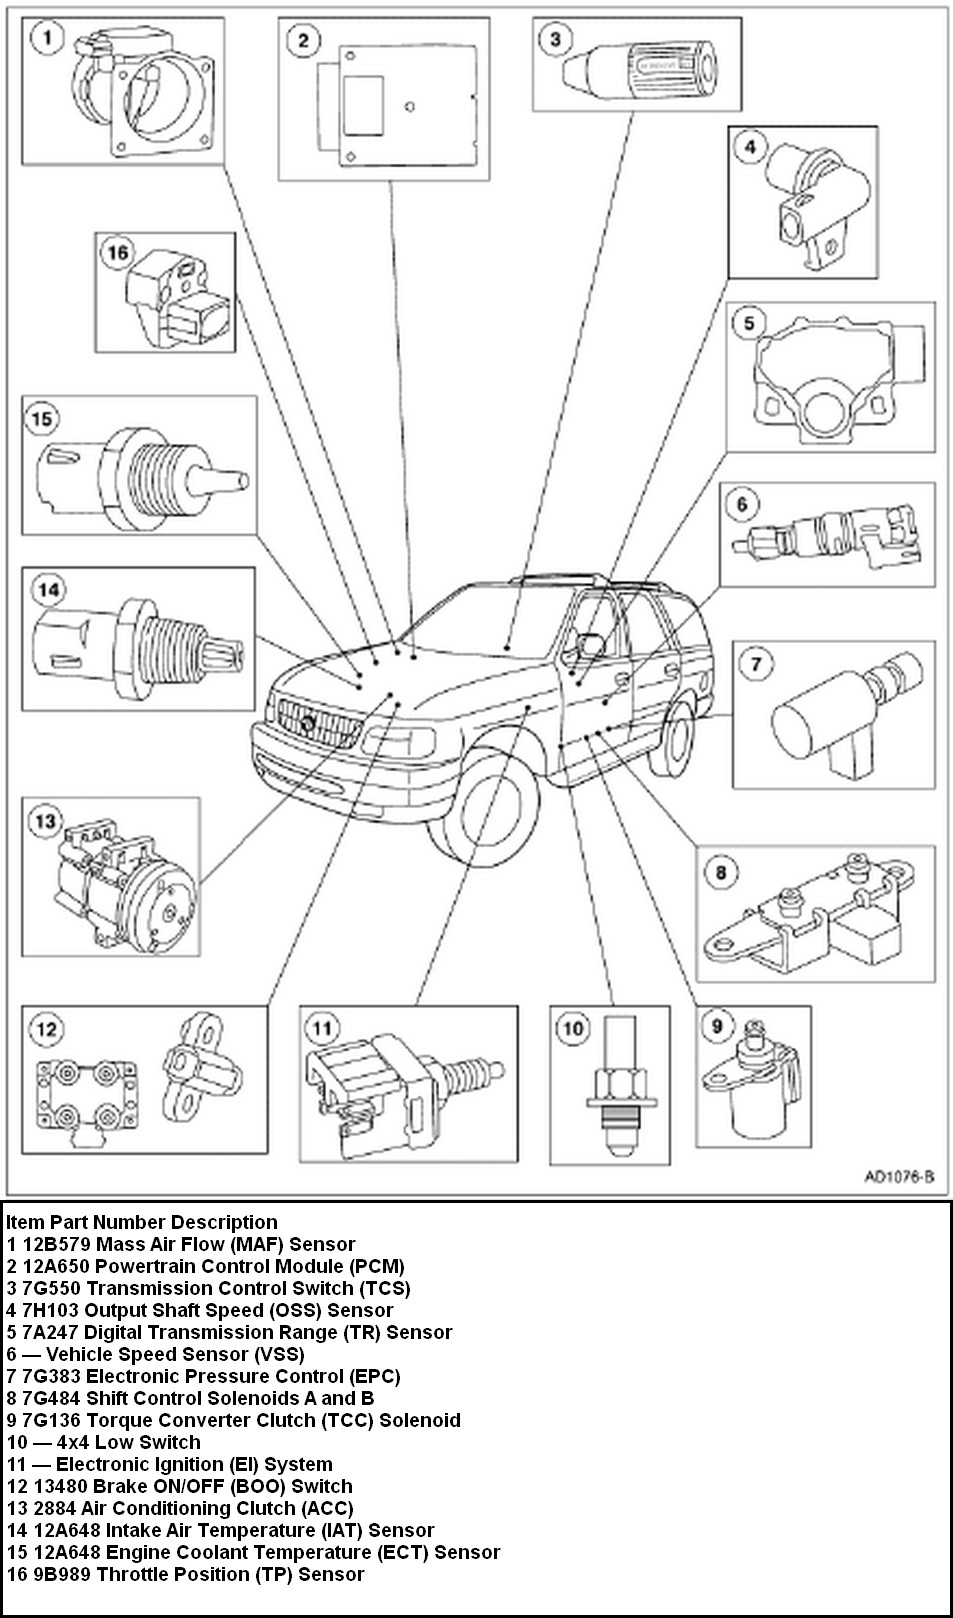 3 8 Buick Engine Diagram Oil Pump further Buick Transmission Diagram together with Buick Transmission Diagram also Free Download Eaton Fuller 10 Speed Transmission Service Manual moreover ShowAssembly. on 1997 buick lesabre engine mount diagram